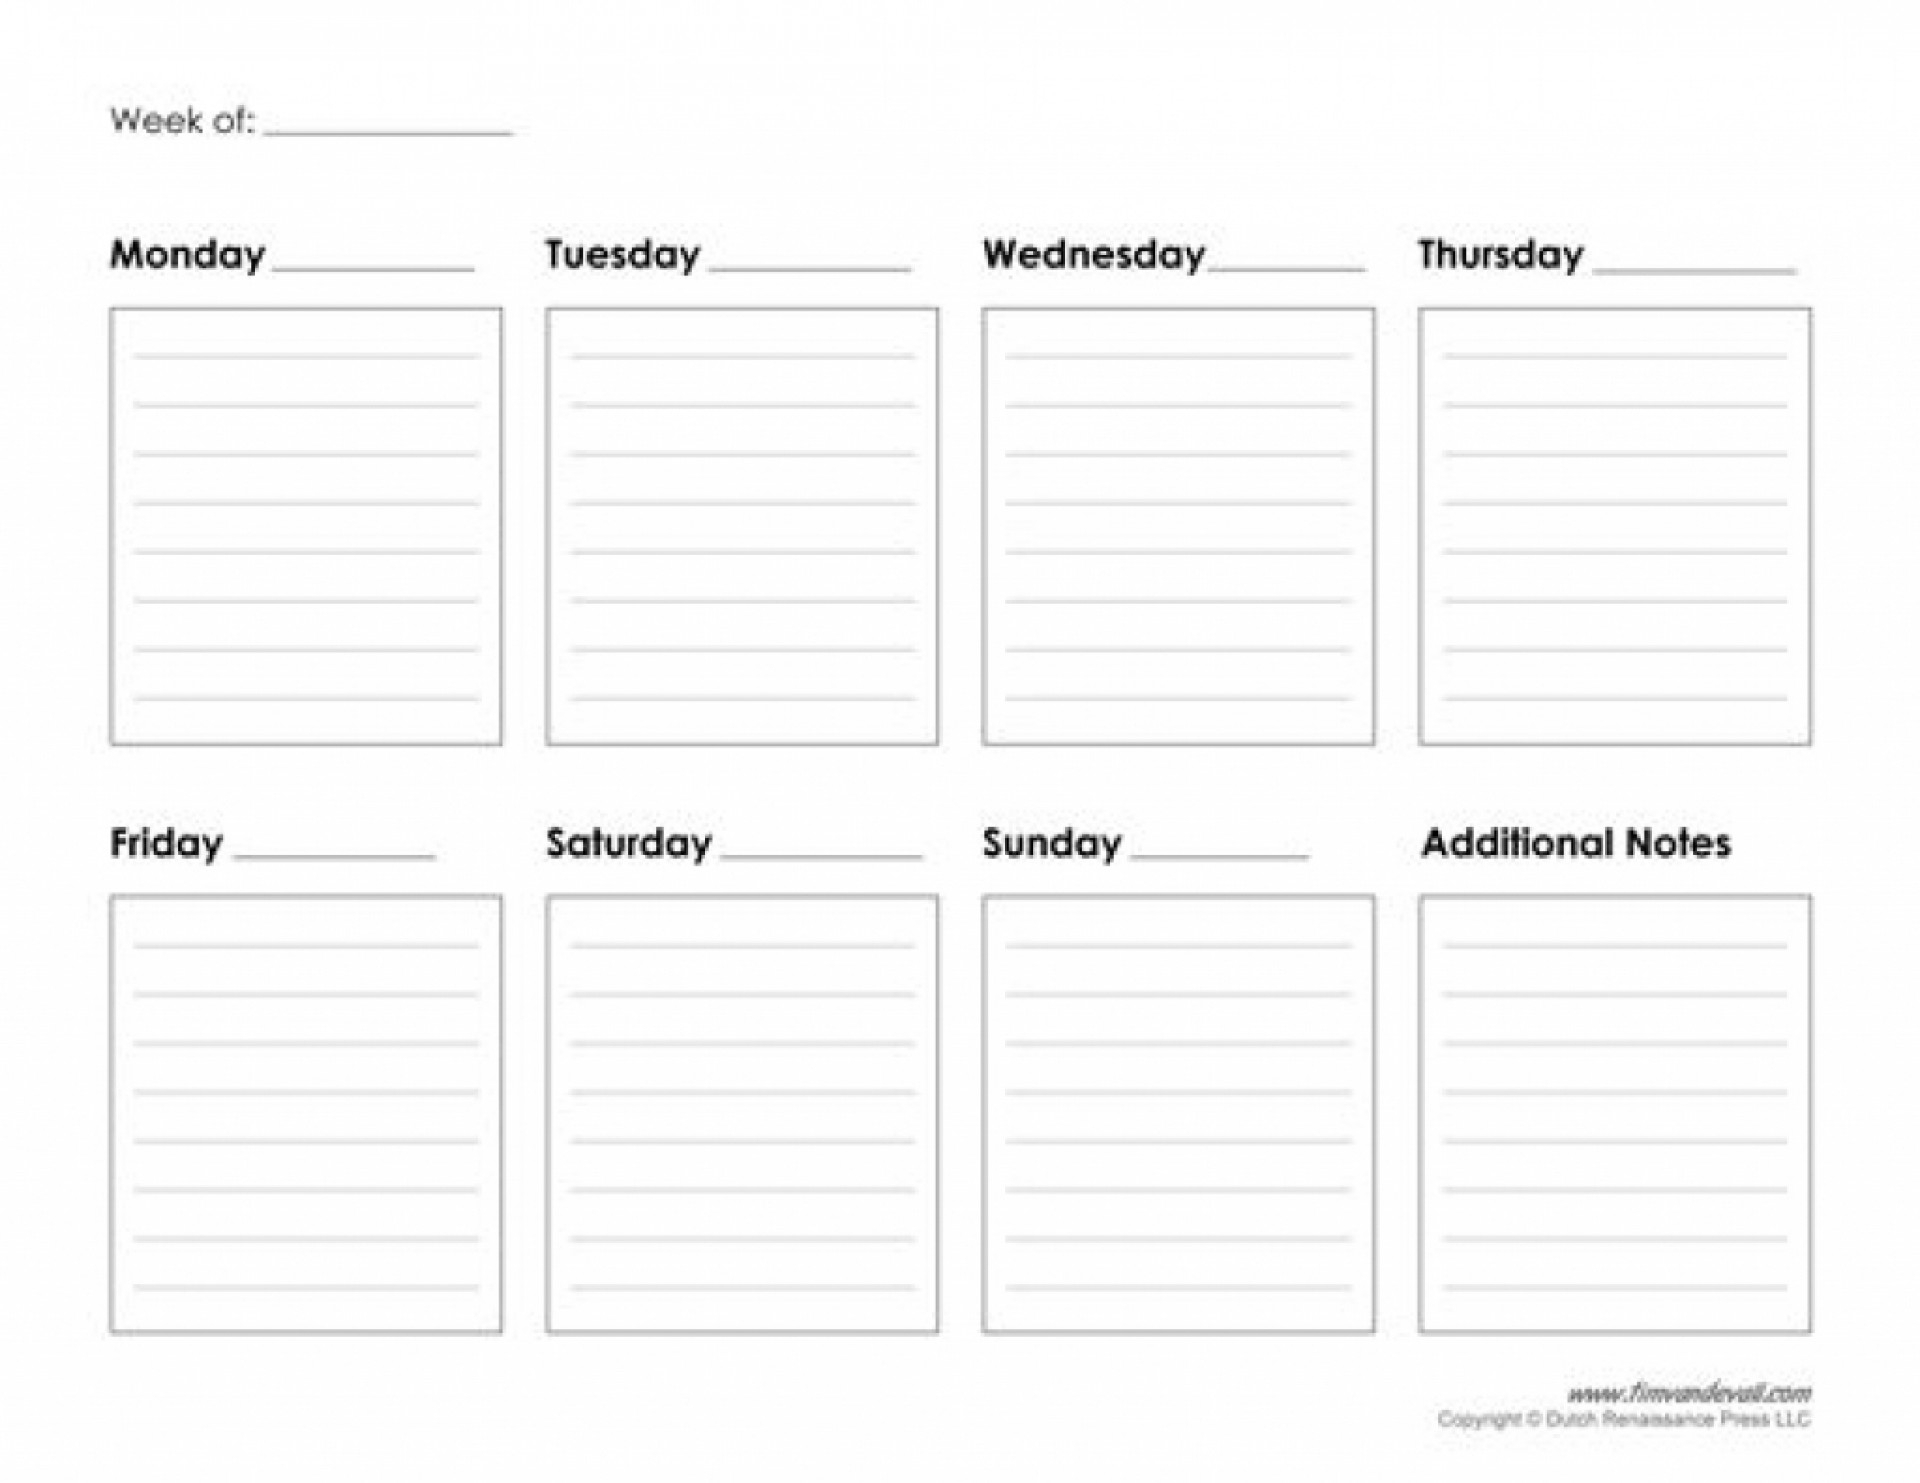 014 Fantastic Day Calendar Template Pictures Inspiration Entry Level with regard to 7 Day Weekly Planner Template Printable